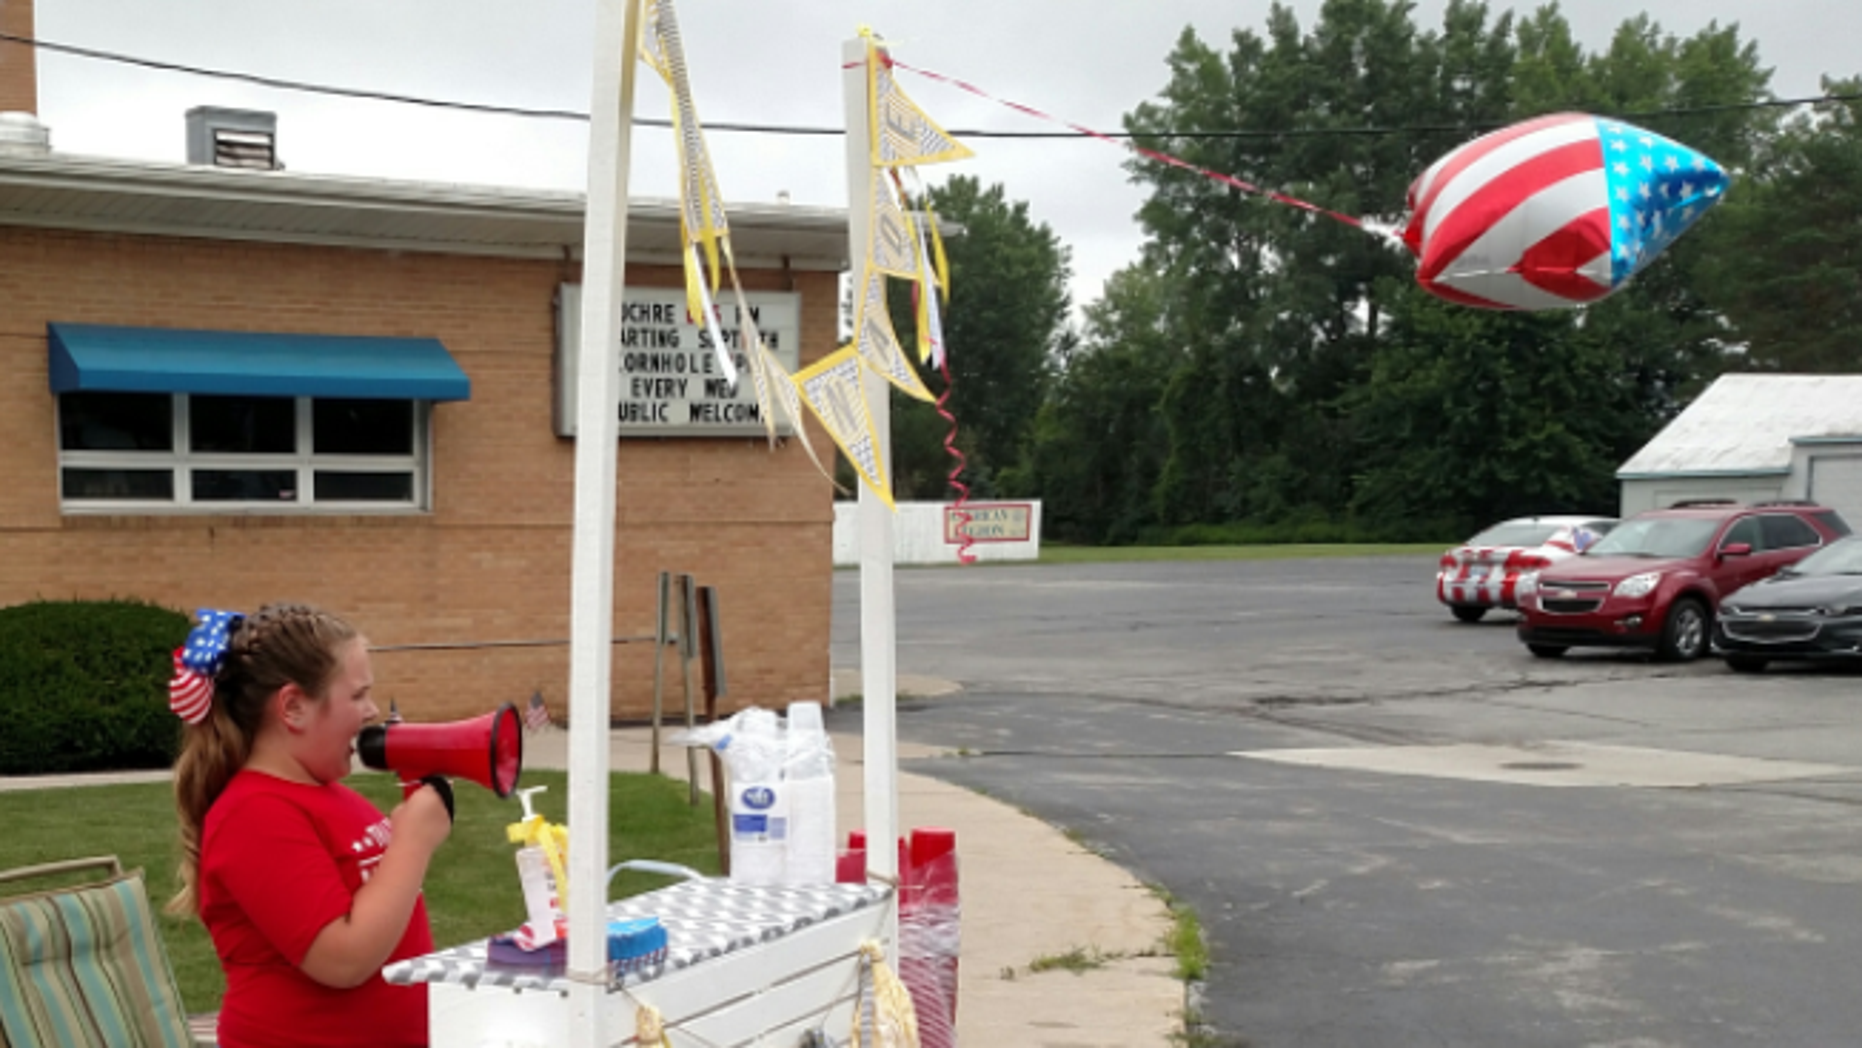 A girl in Michigan is fundraising for veterans using her lemonade stand.